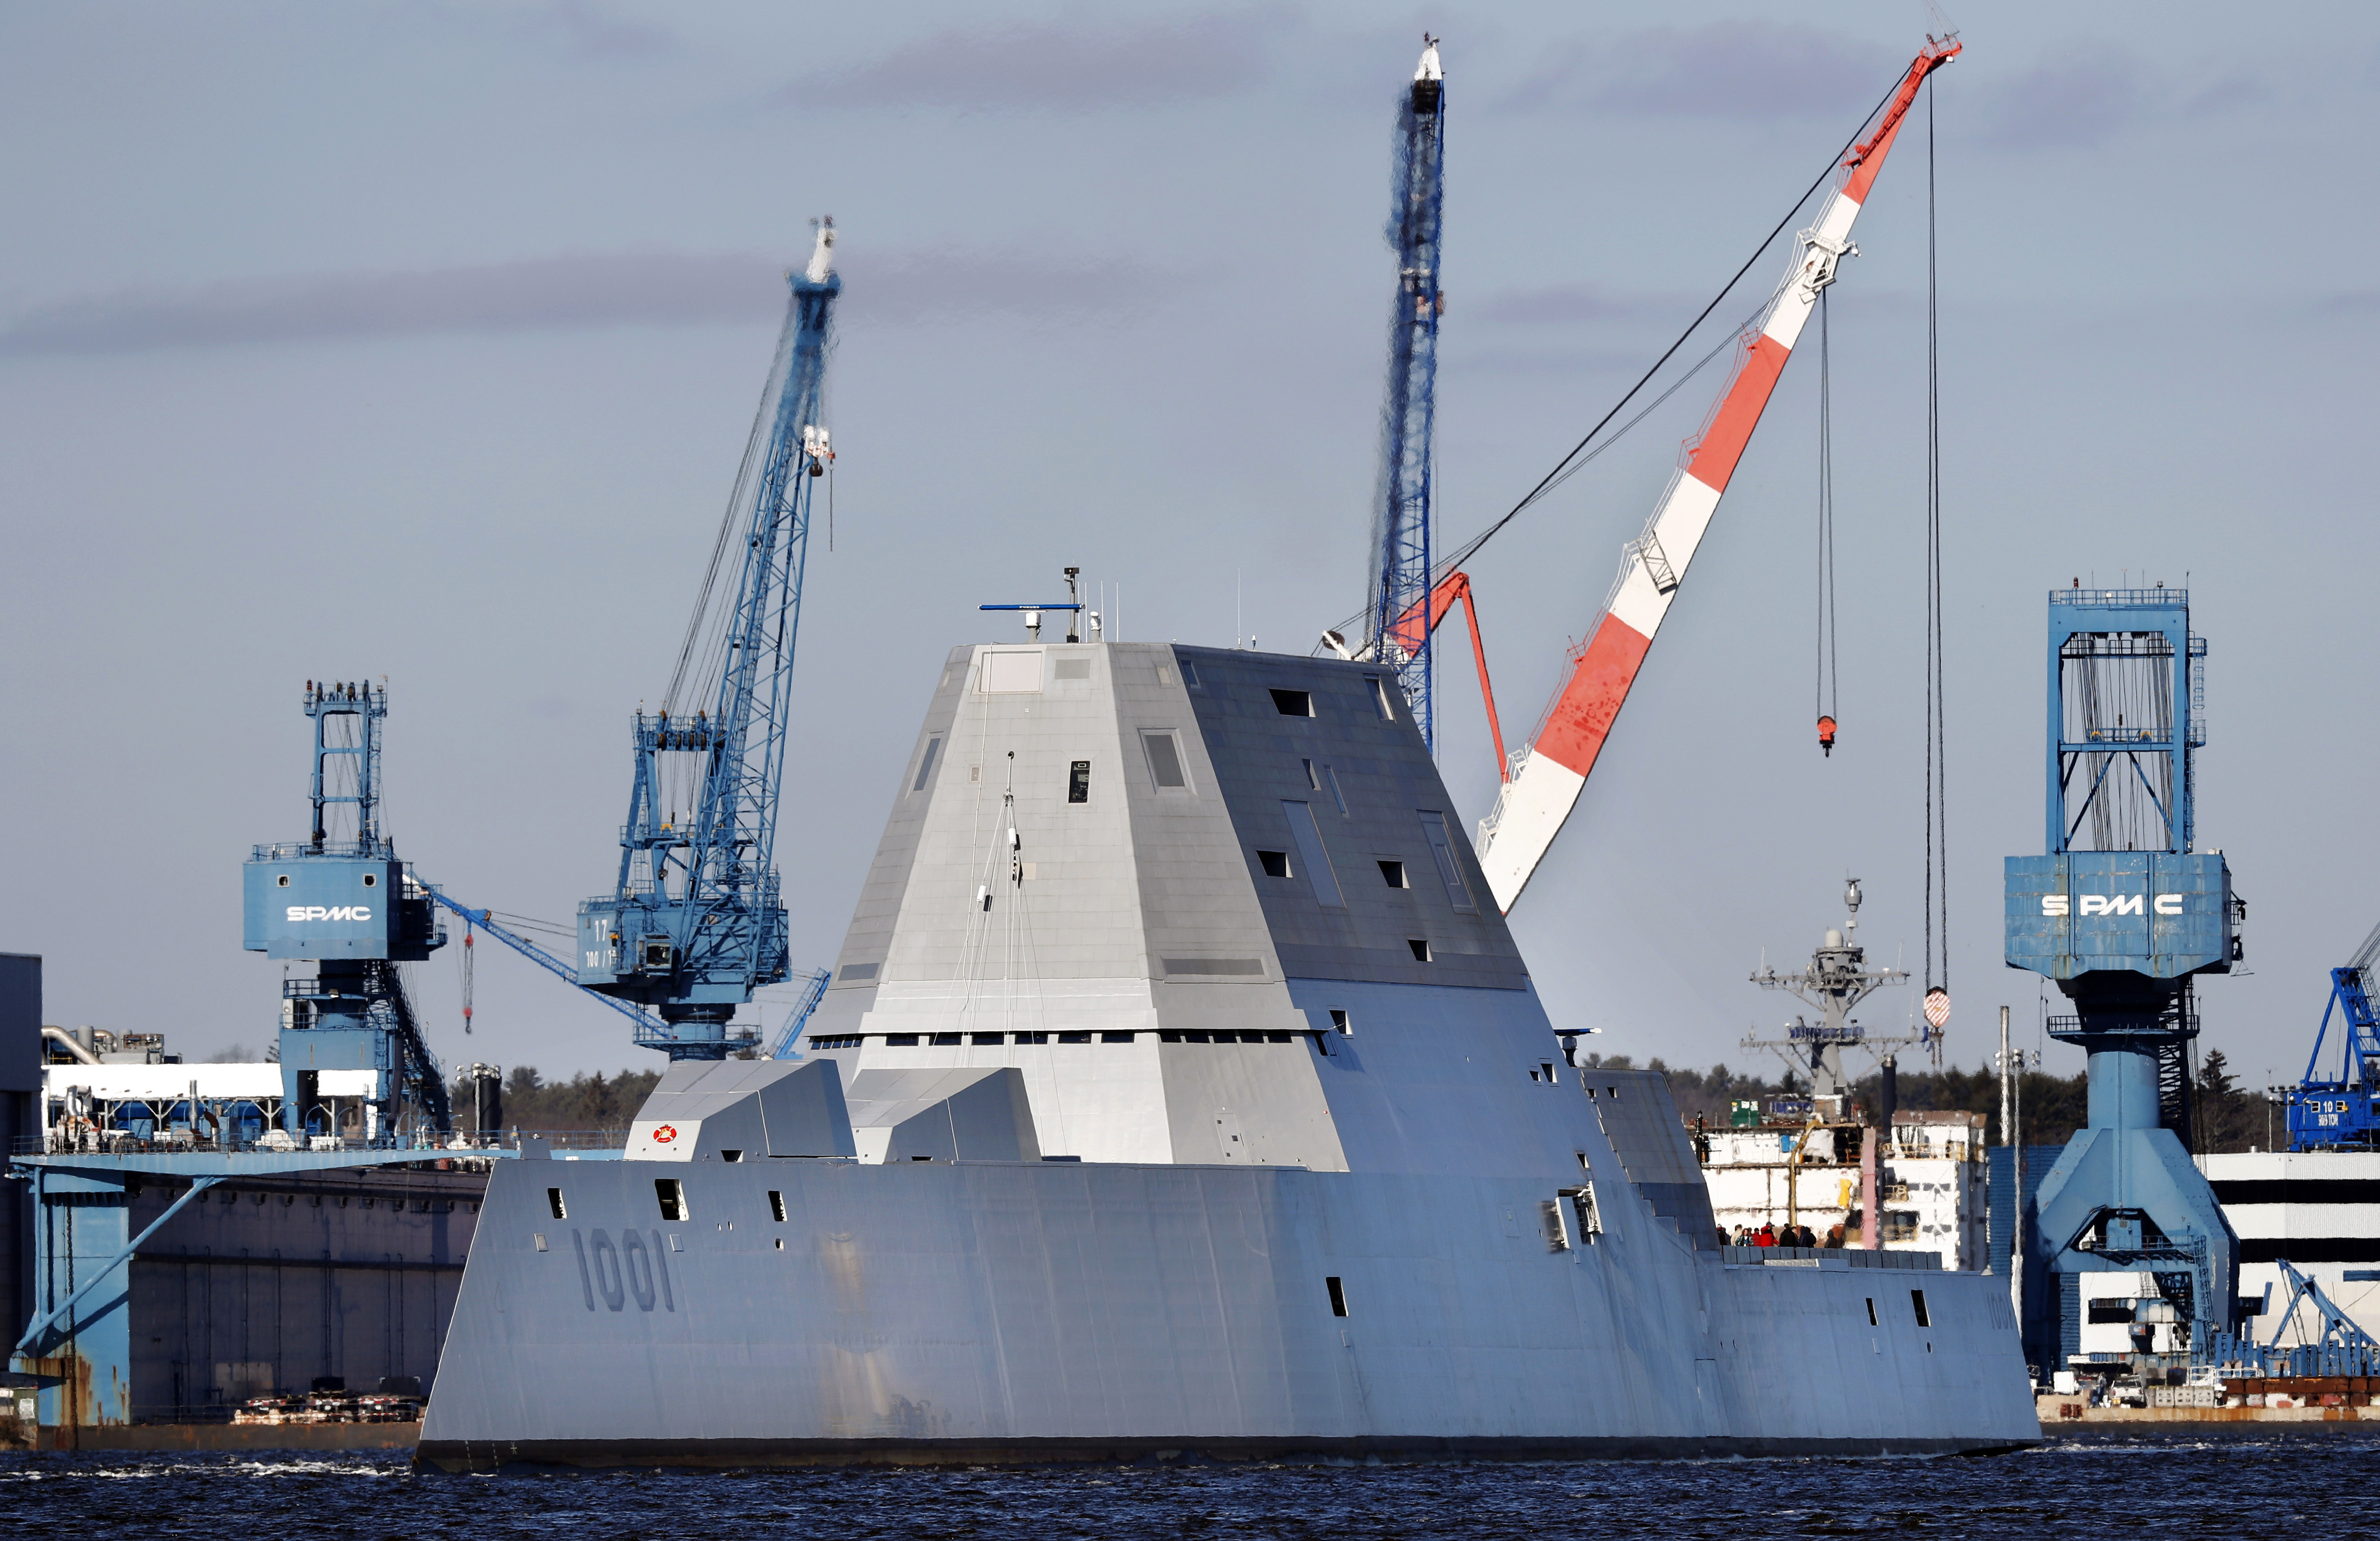 Best Build For Spmc 2020 Bath Iron Works faces uncertainty on multiple fronts — Business